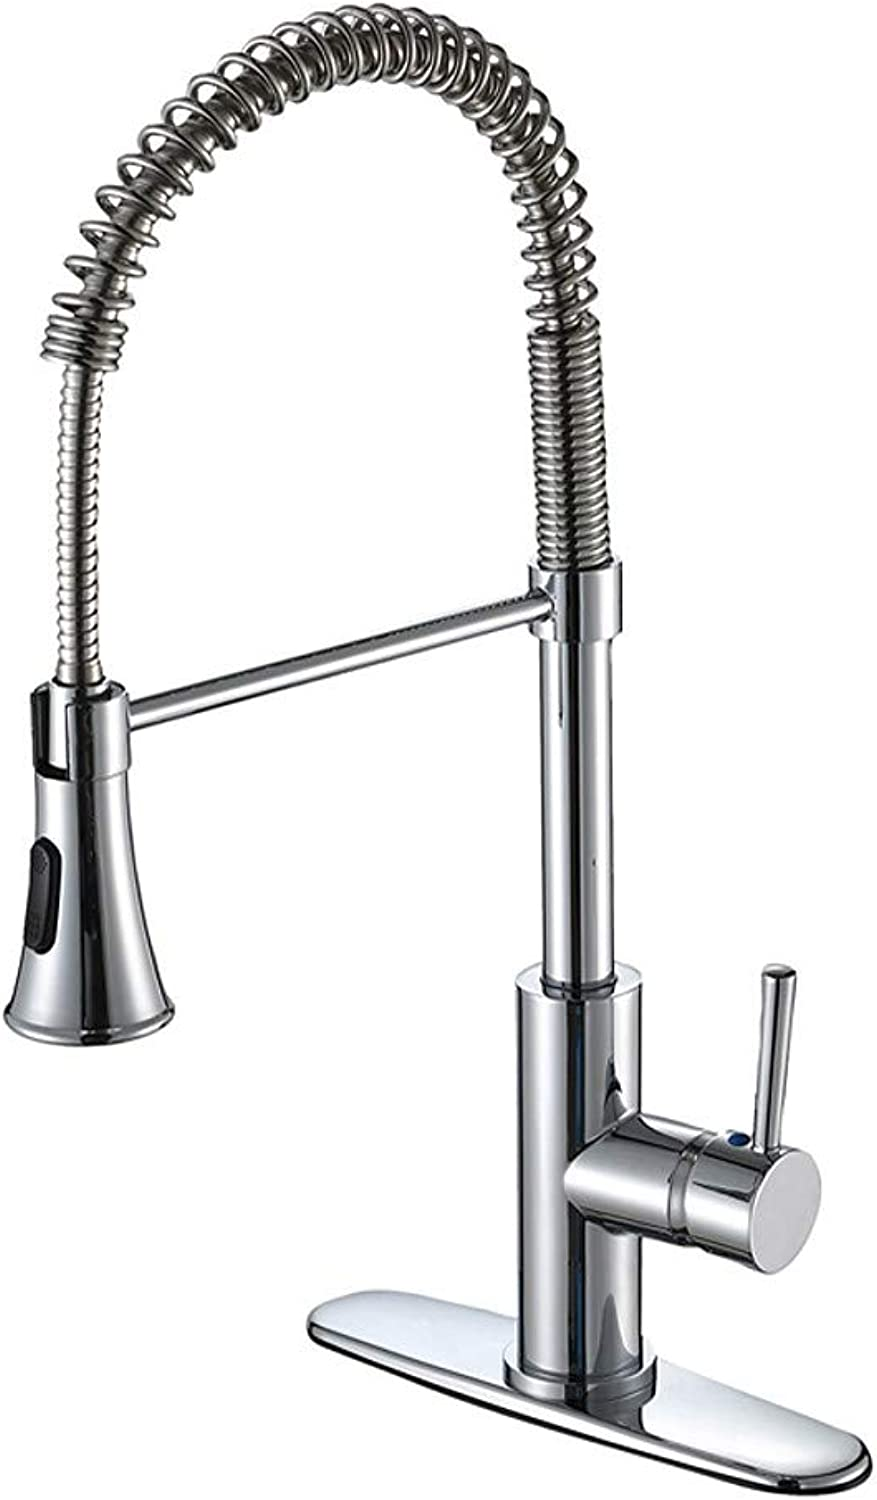 UKBF-Kitchen Faucet Chrome Deck Mounted Contemporary Classic Style Kitchen Taps Brass CUPC UPC Silver